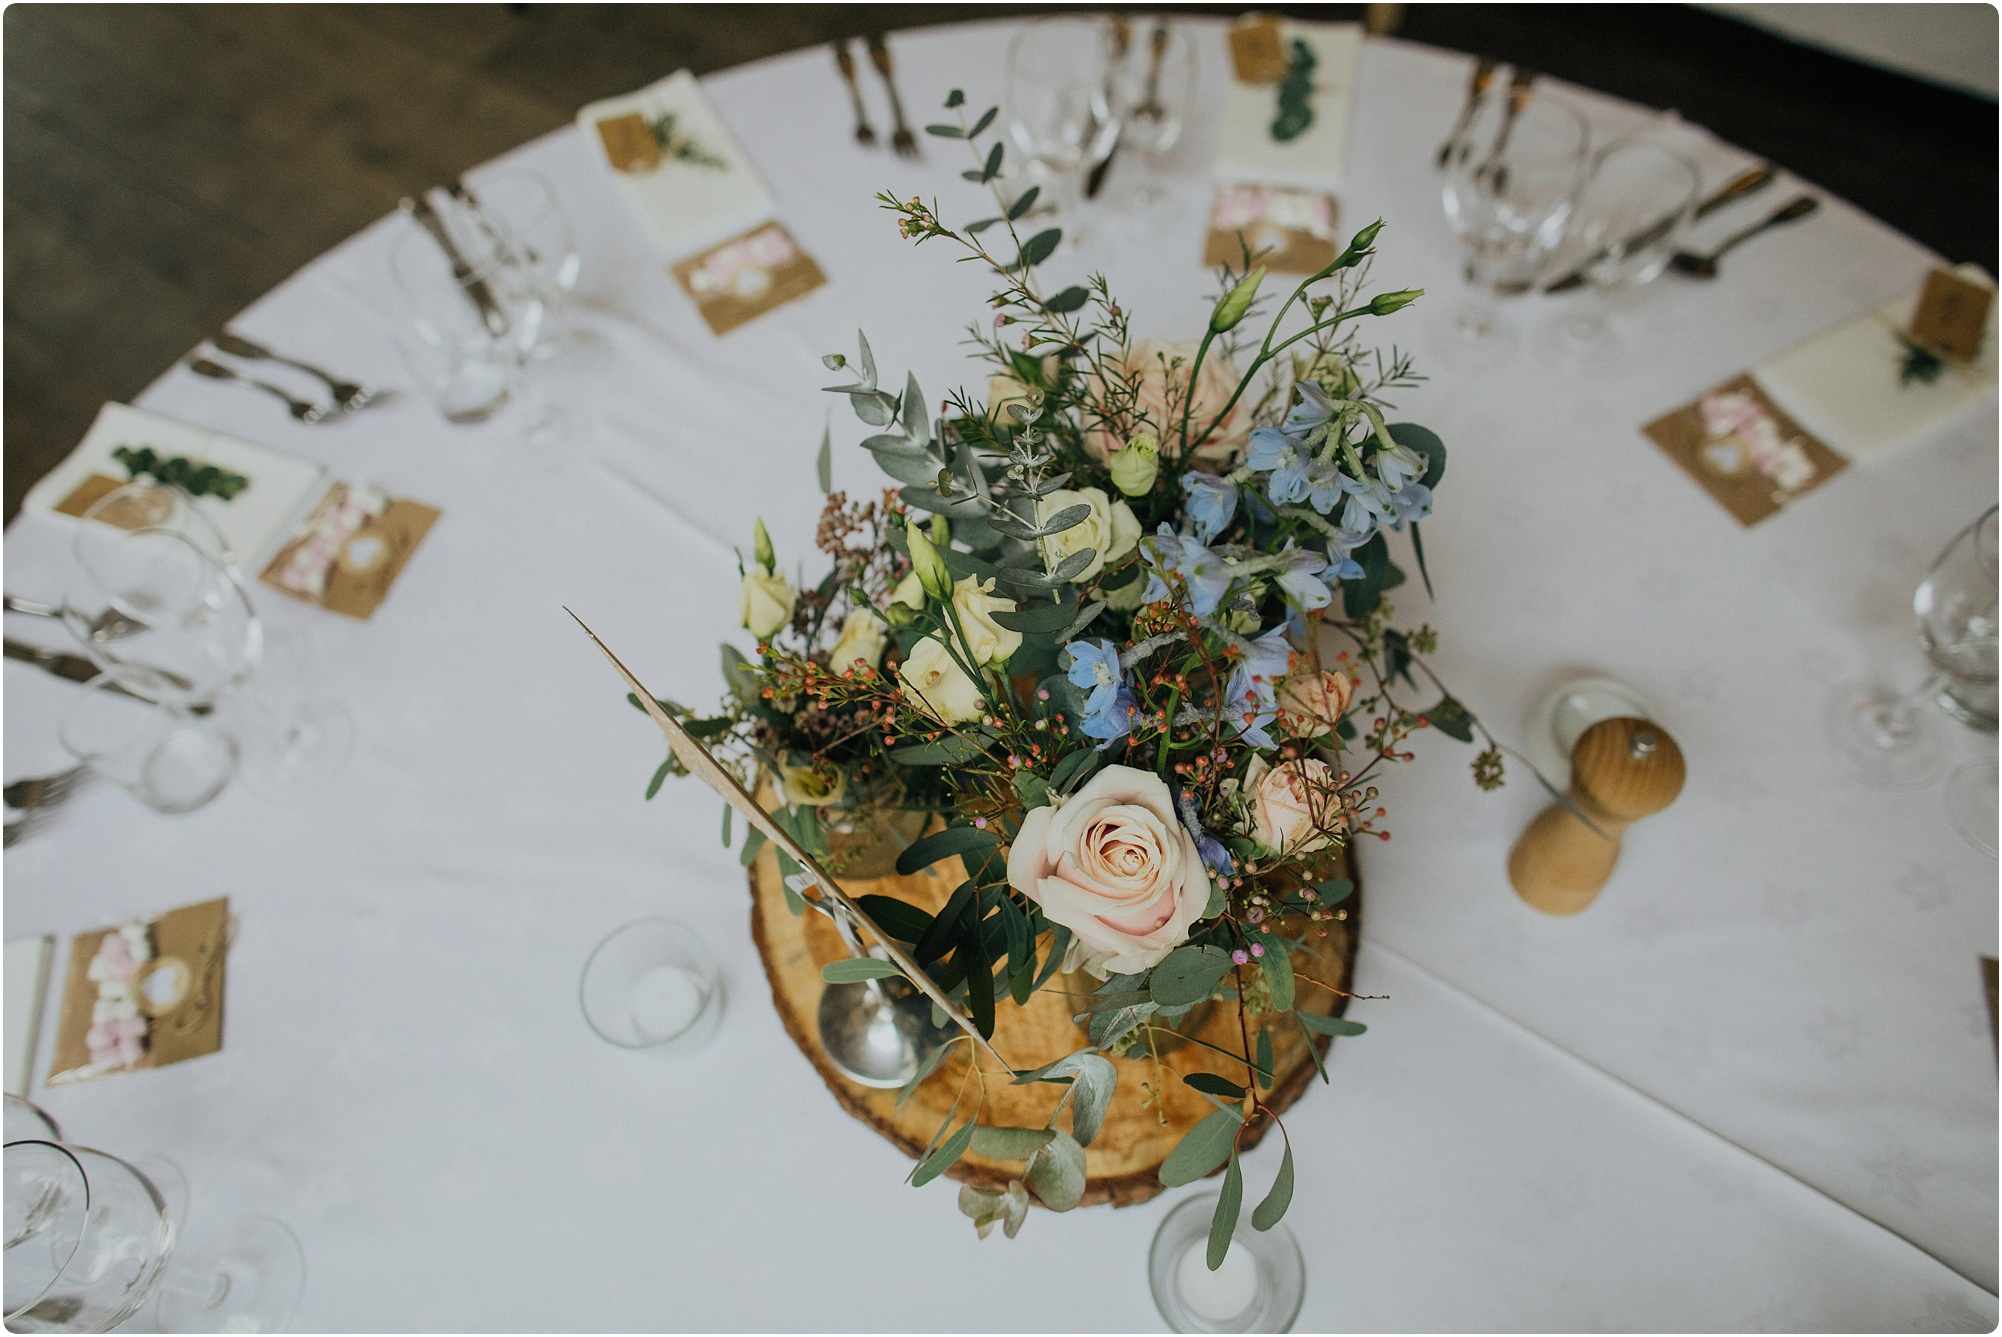 centre piece of flowers at a Cripps Barn Winter Wedding made by Go Wild Flowers